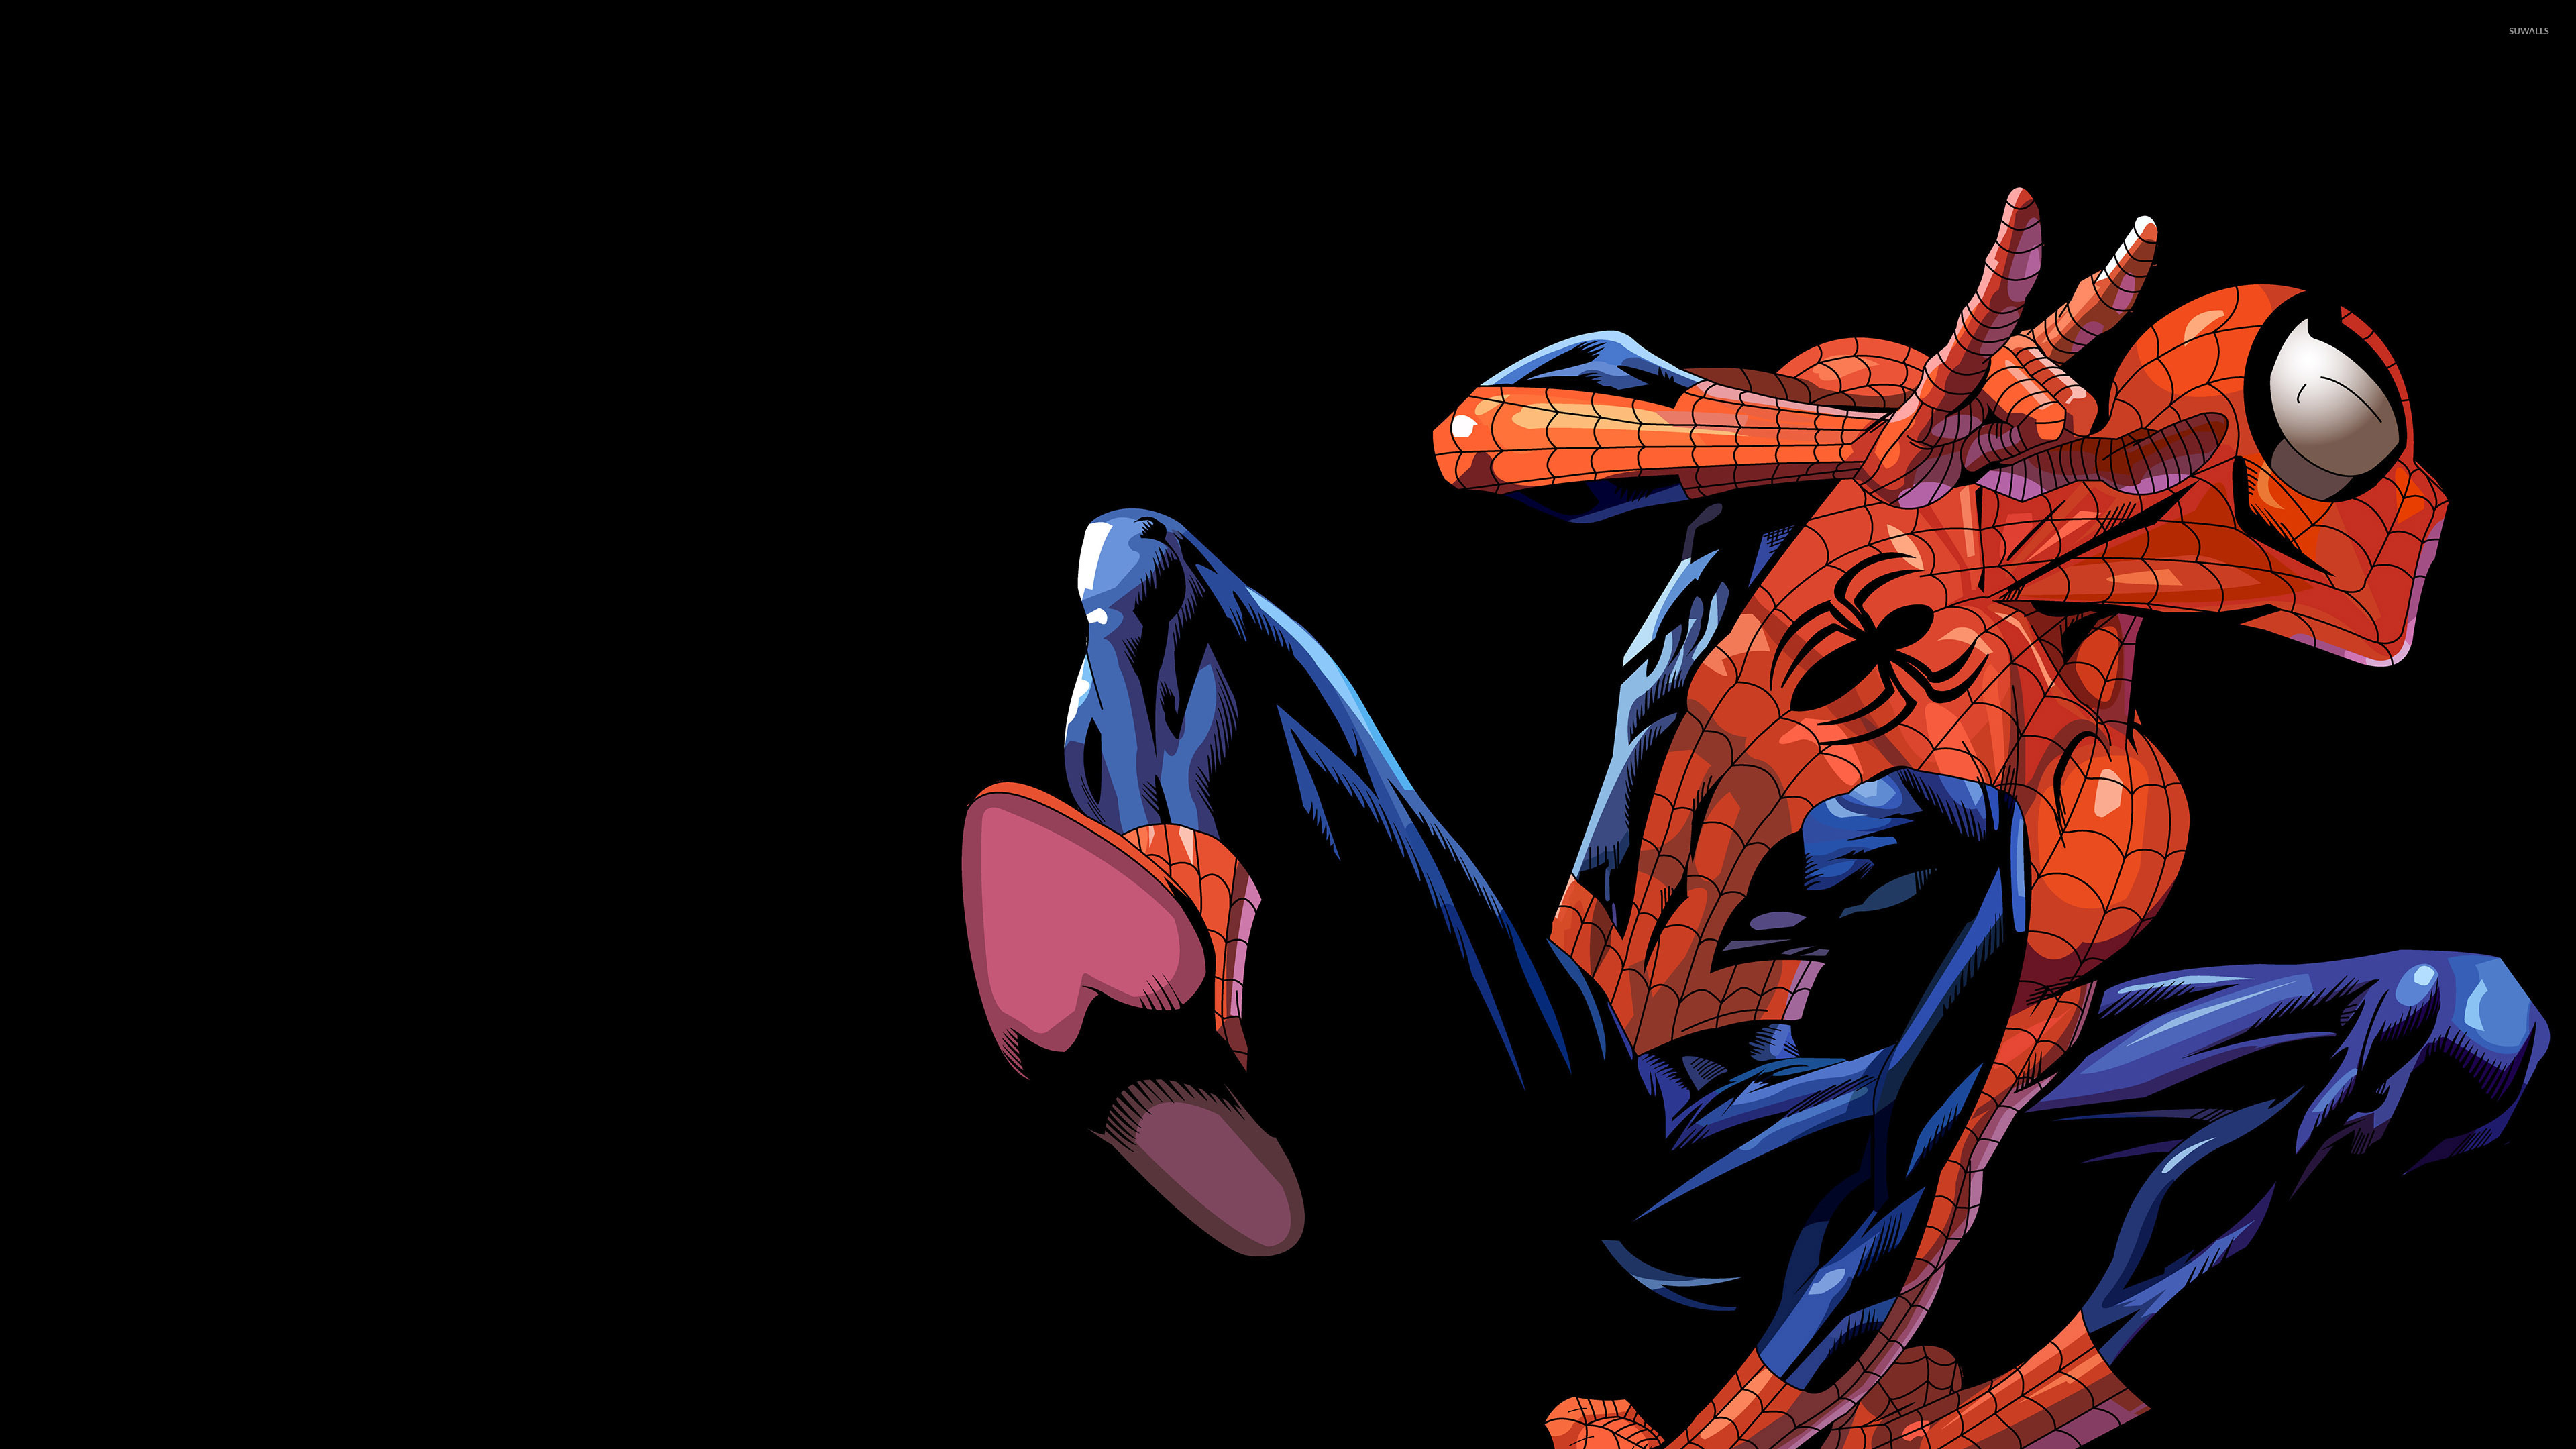 Spider Man In The Air Wallpaper Comic Wallpapers 50882